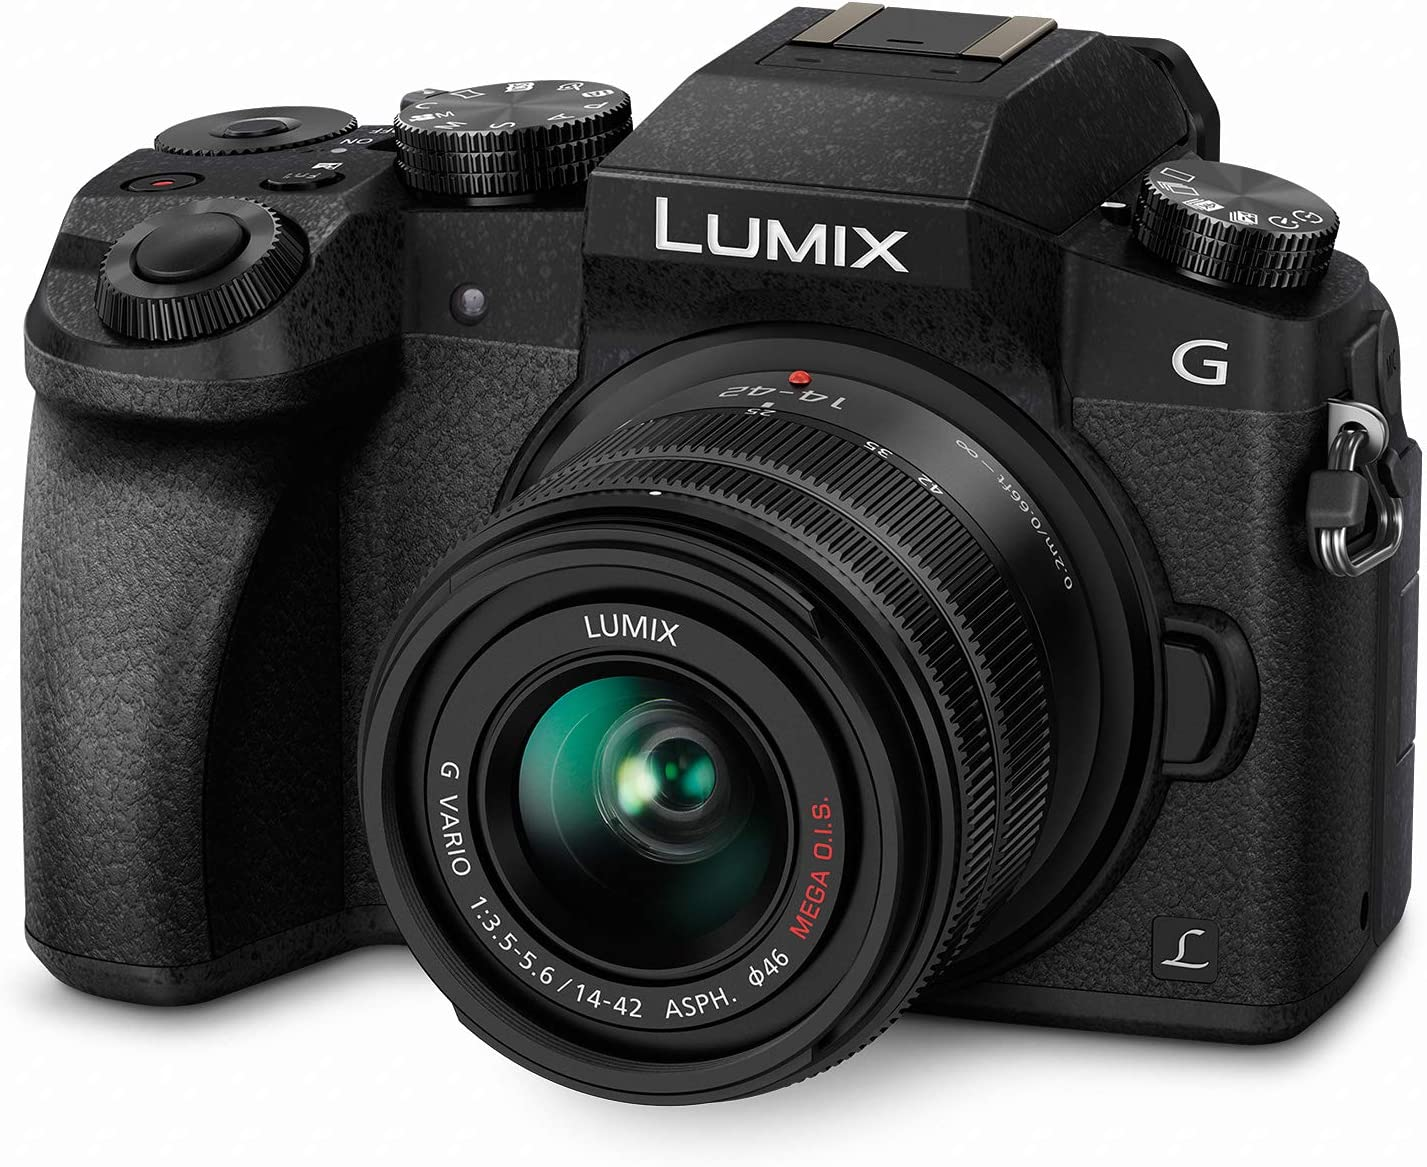 Panasonic Lumix G7 Best Camera For Filmmaking on a budget under $500